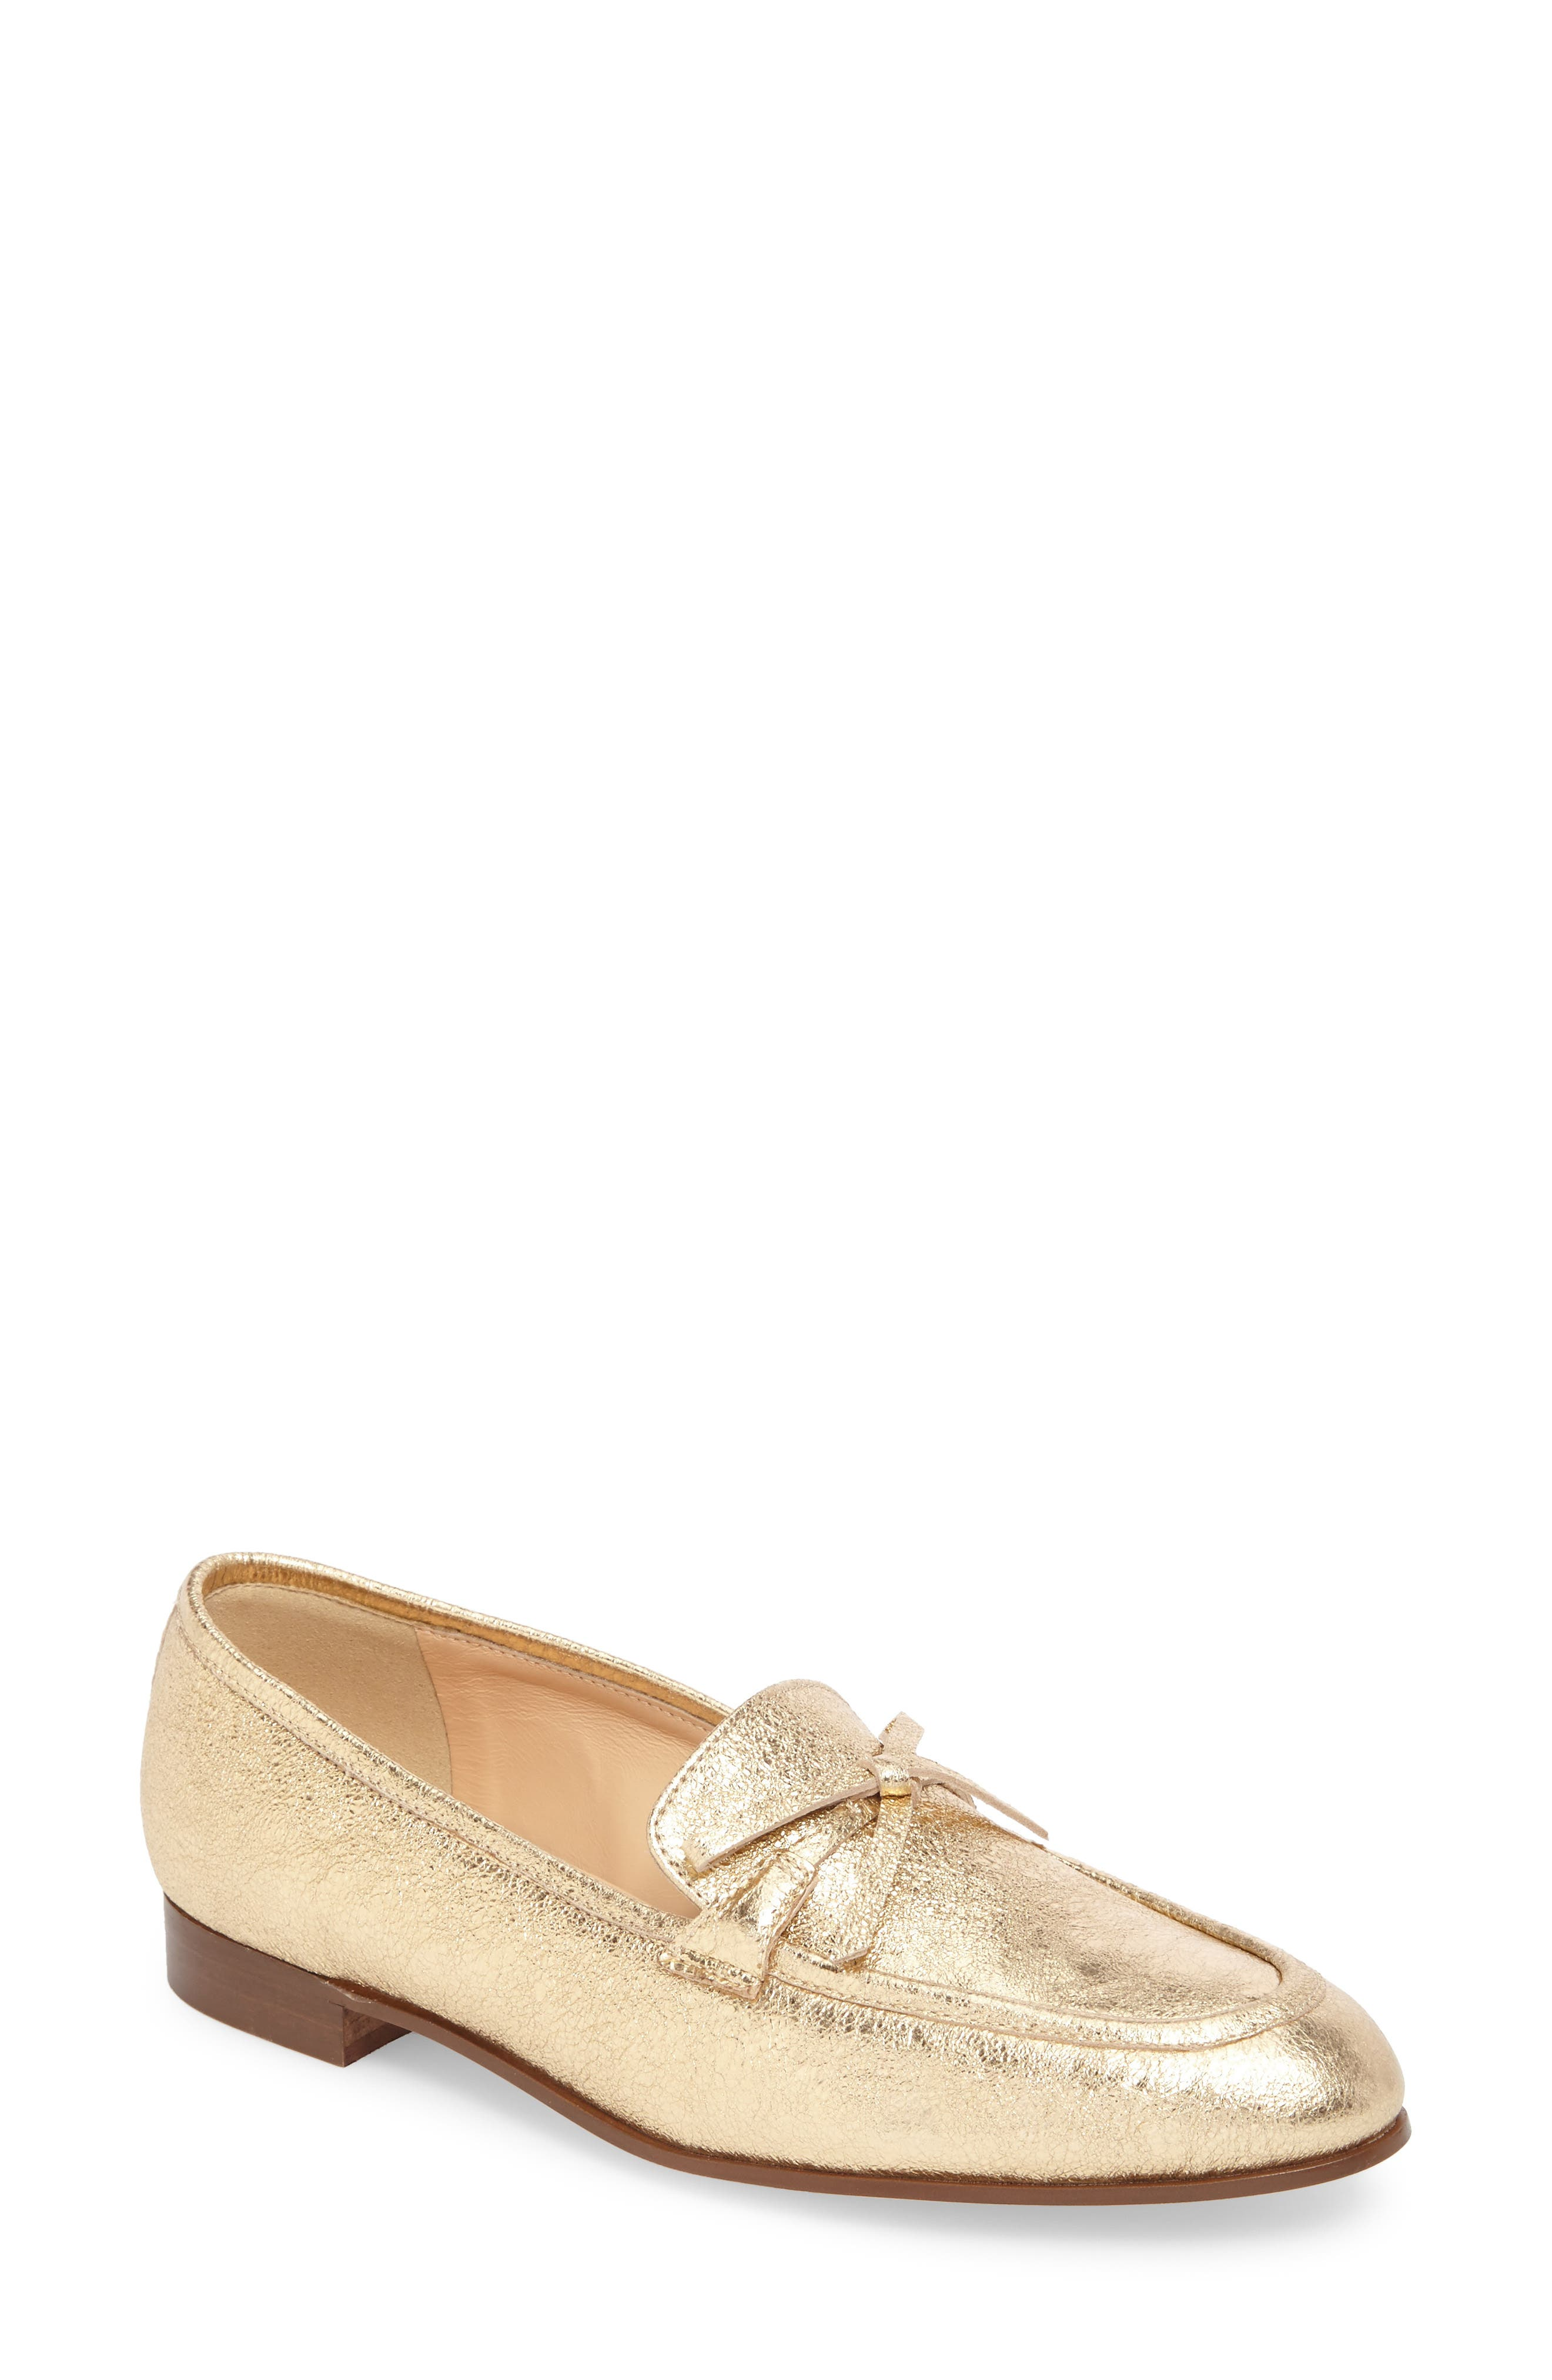 Alternate Image 1 Selected - J. Crew Metallic Bow Loafer (Women)